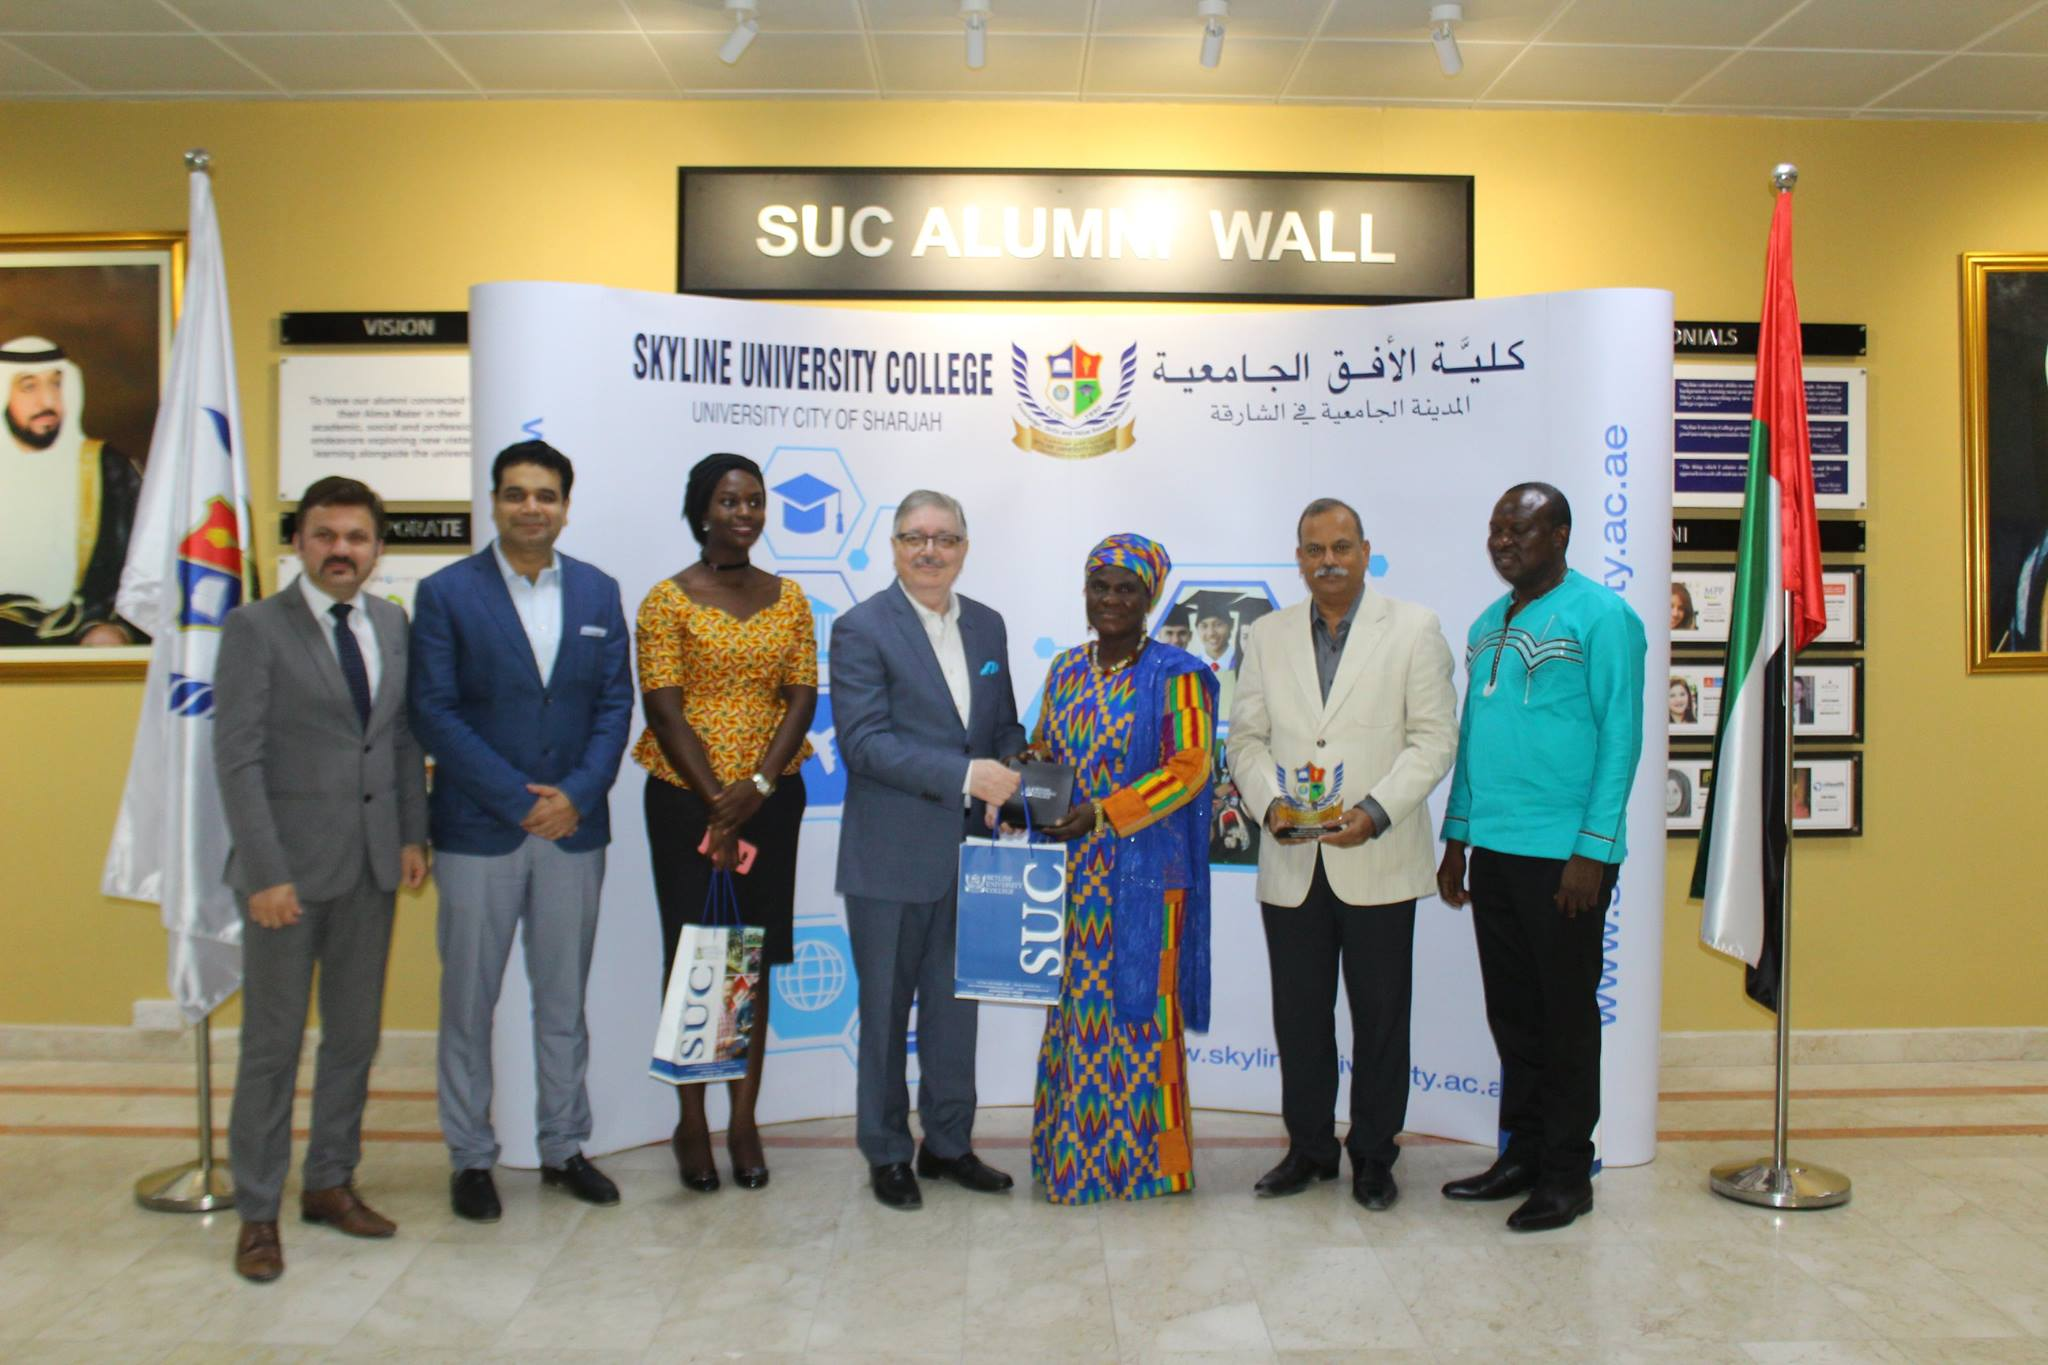 General of the Republic of Ghana, Dubai visited SUC